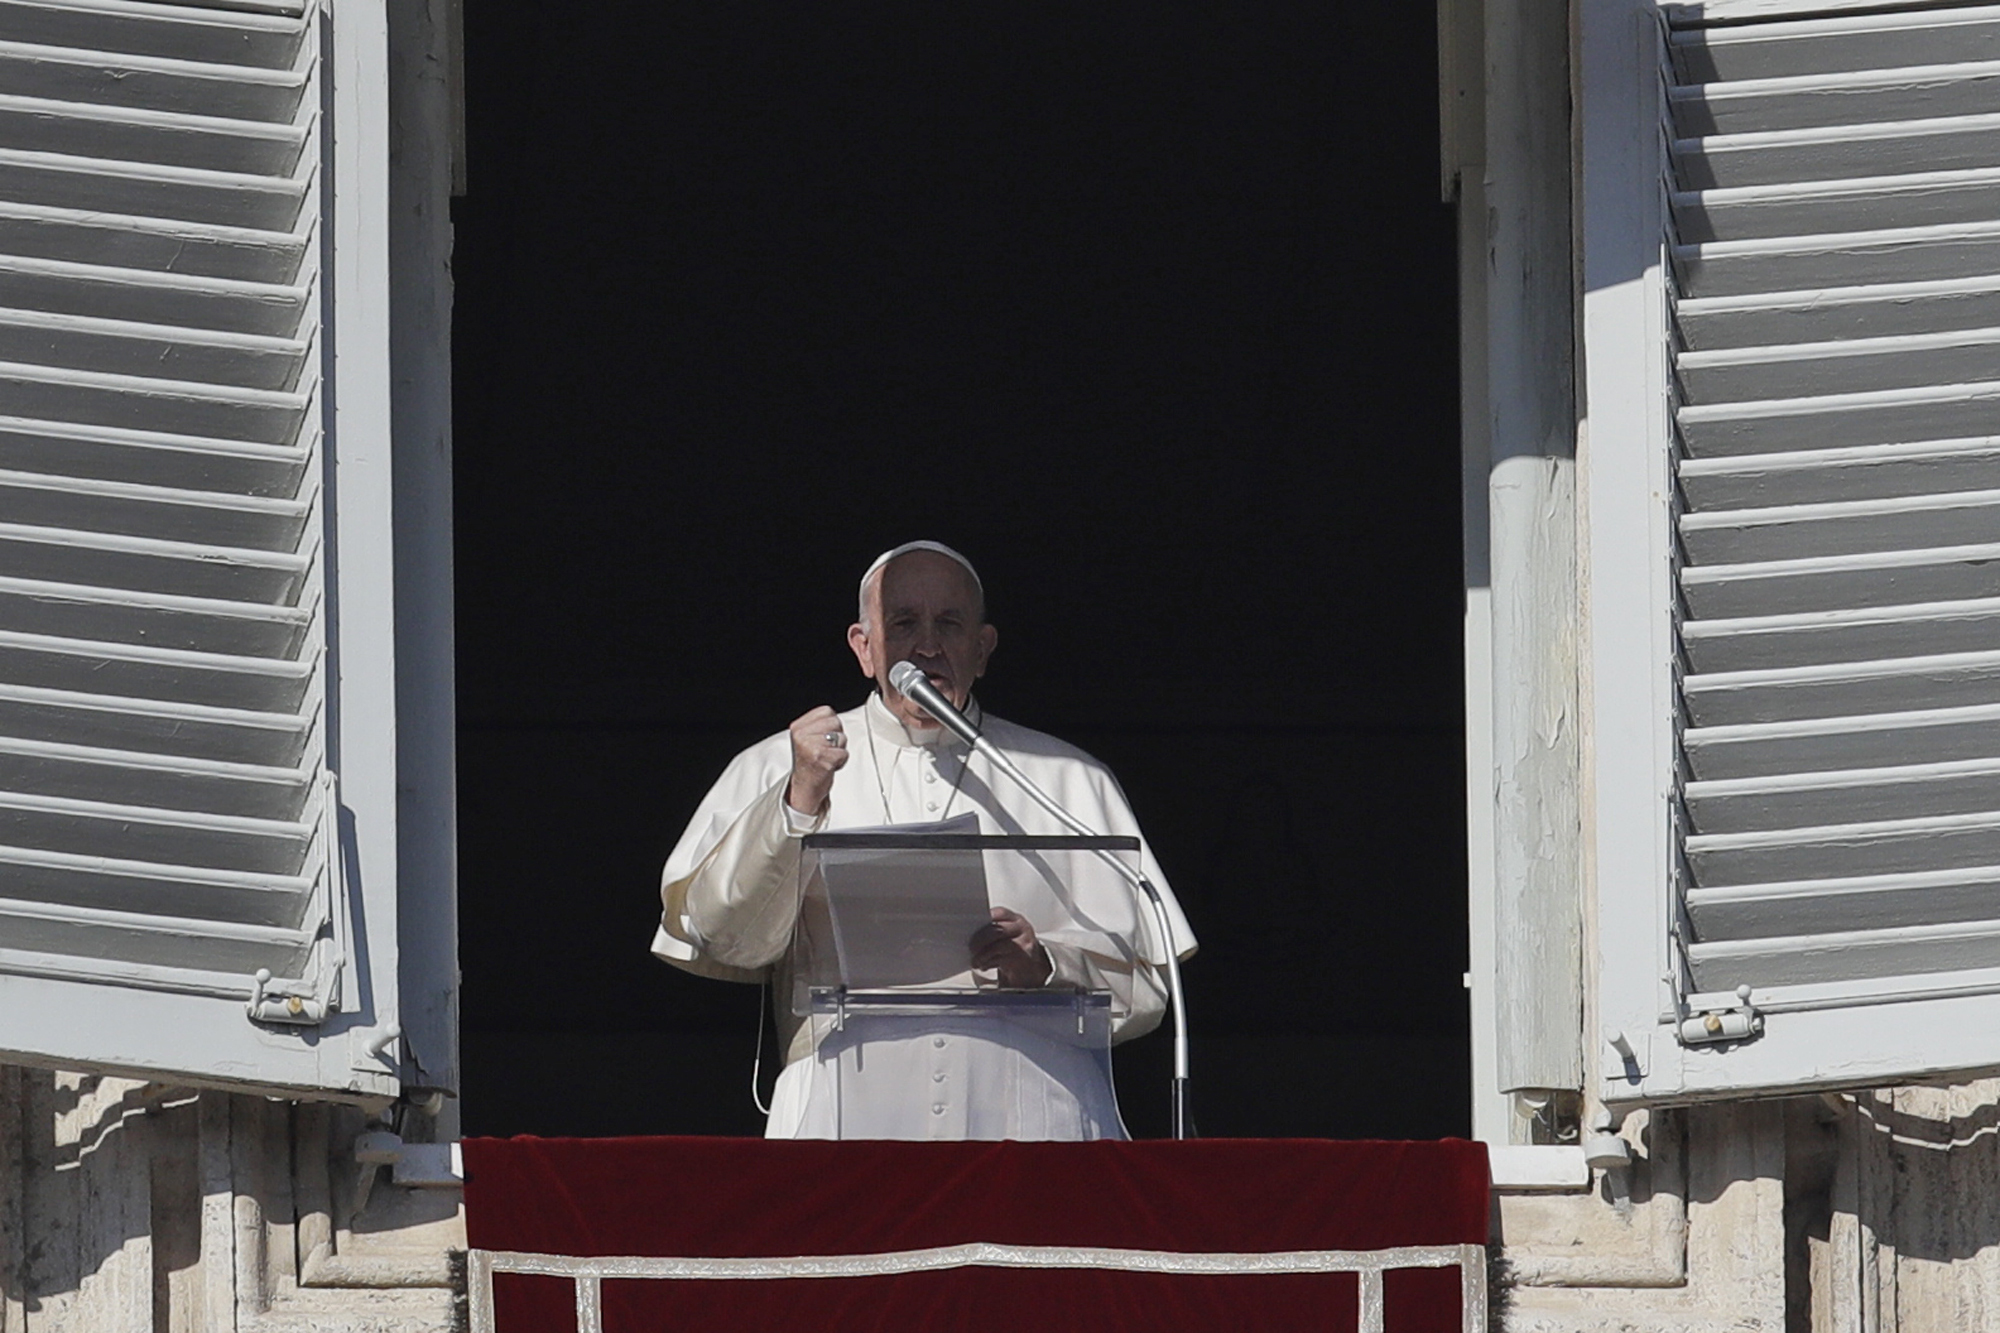 Pope Francis recites the Angelus prayer from his studio's window overlooking St. Peter's square at the Vatican, Wednesday, Jan. 1, 2020.